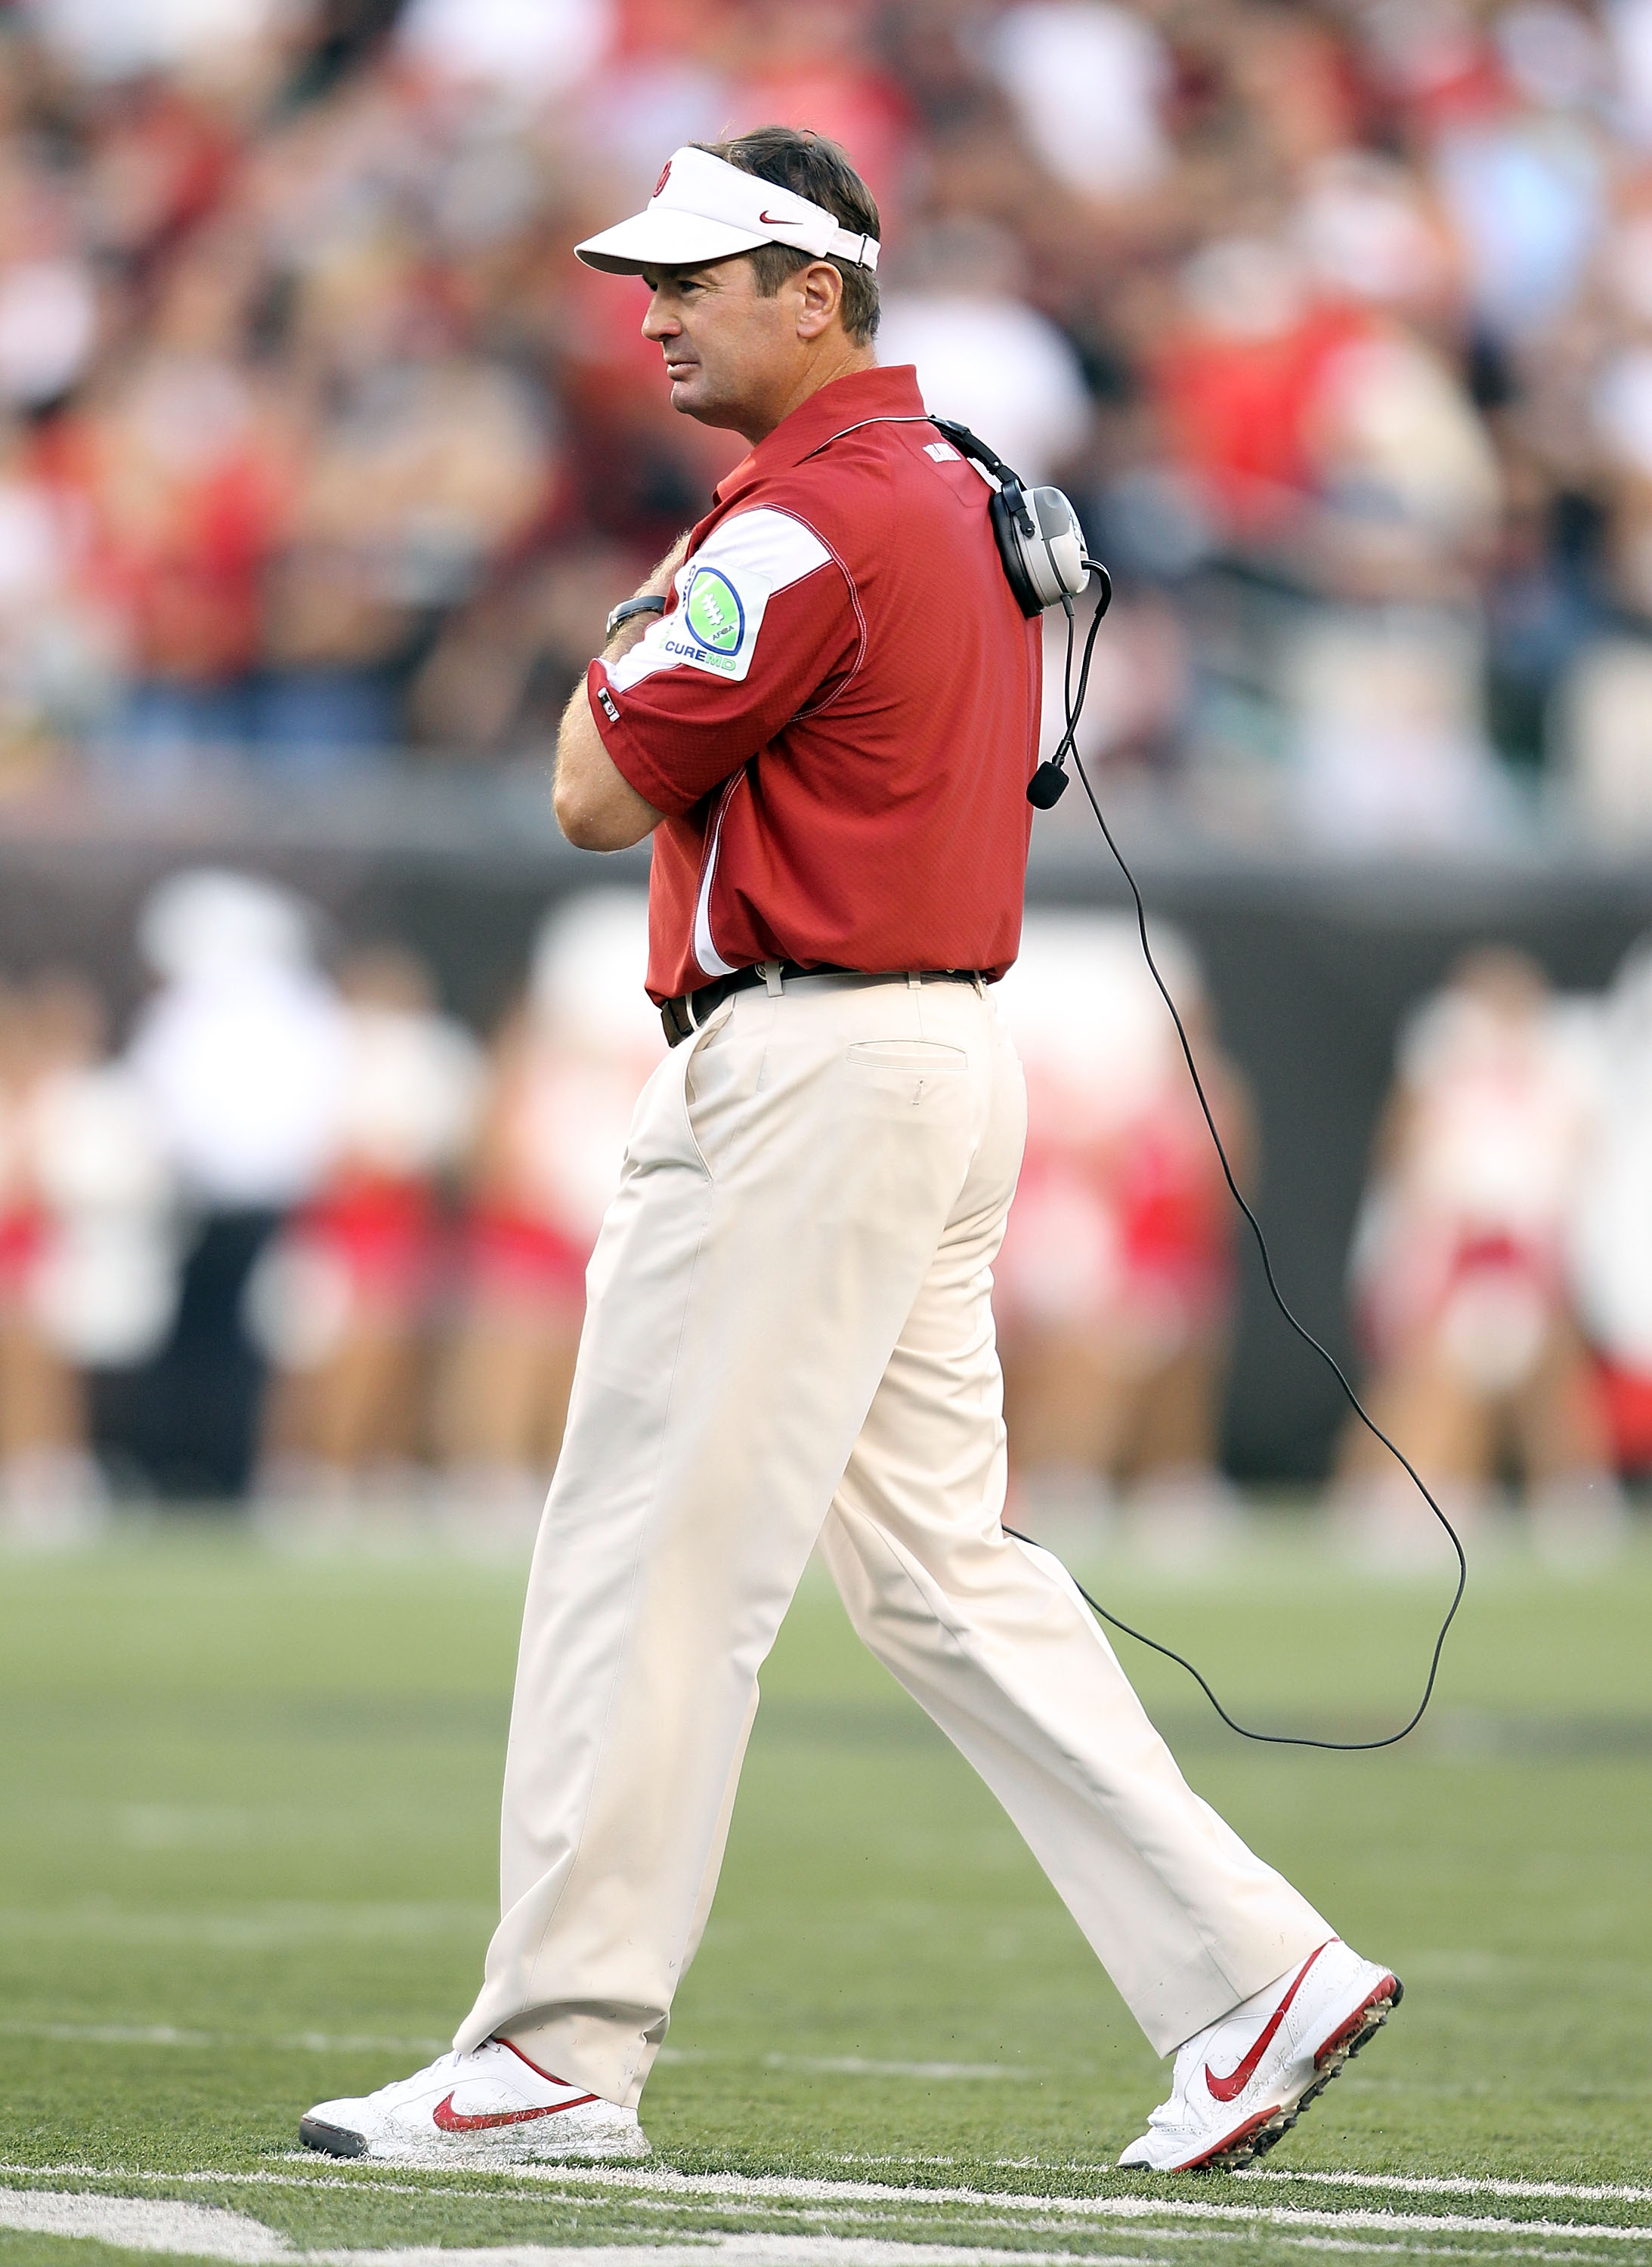 CINCINNATI - SEPTEMBER 25:  Bob Stoops the Head Coach of the Oklahoma Sooners walks onto the field during the game against the Cincinnati Bearcats at Paul Brown Stadium on September 25, 2010 in Cincinnati, Ohio.  (Photo by Andy Lyons/Getty Images)